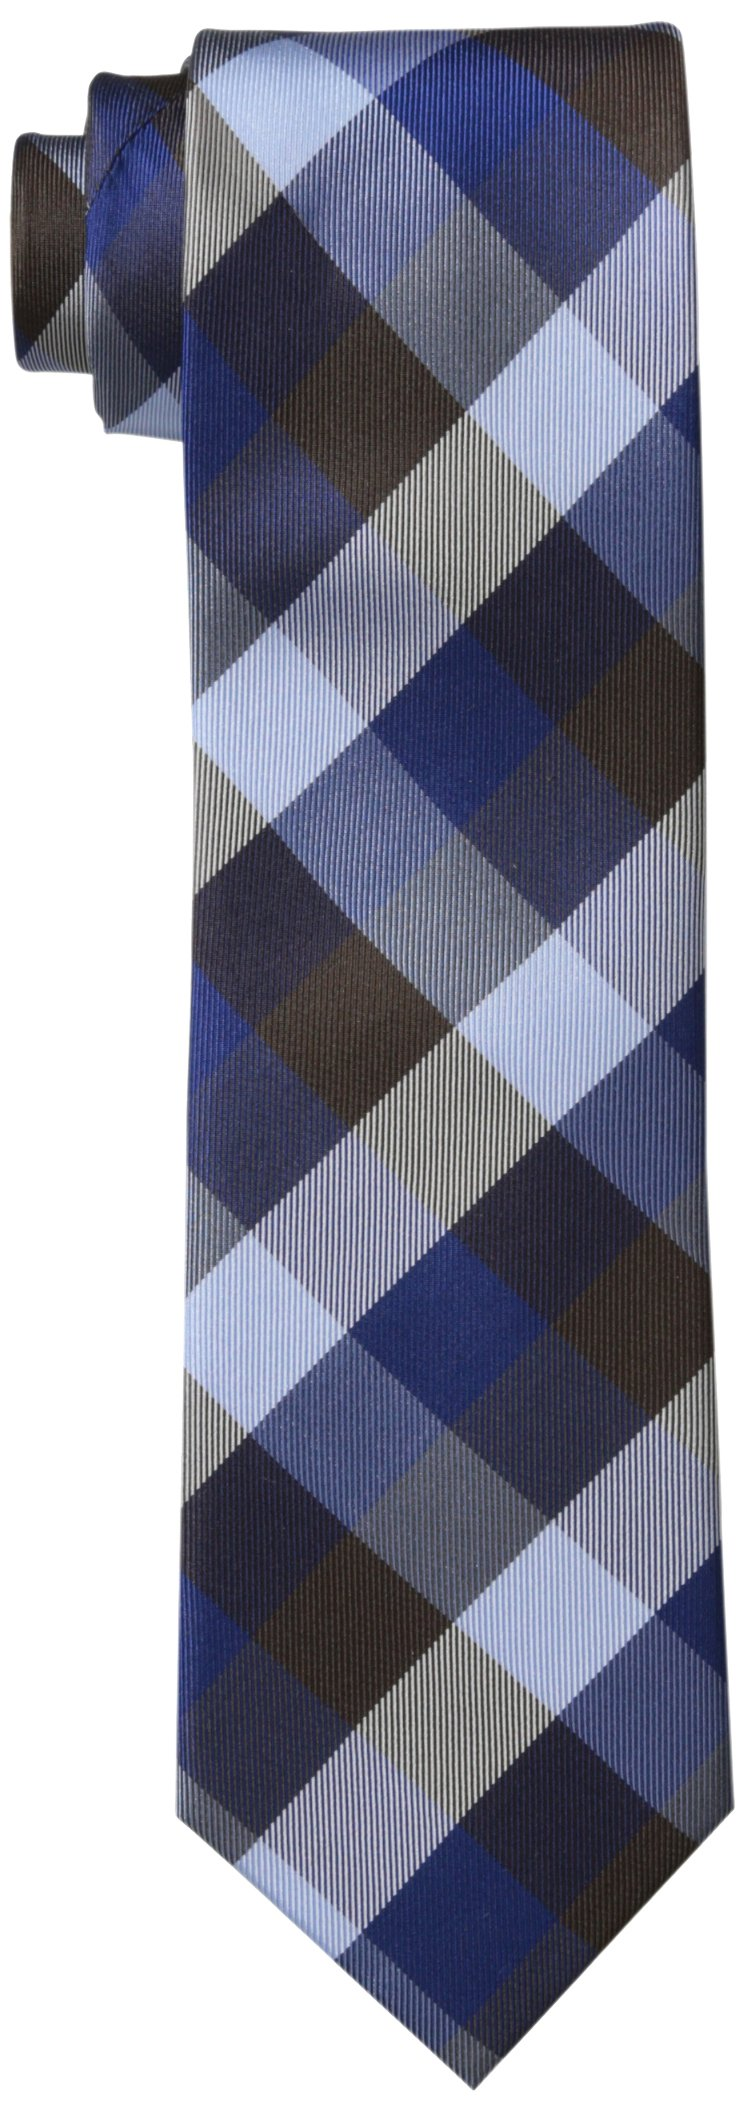 Tommy Hilfiger Men's Buffalo Tartan Tie, Brown Regular